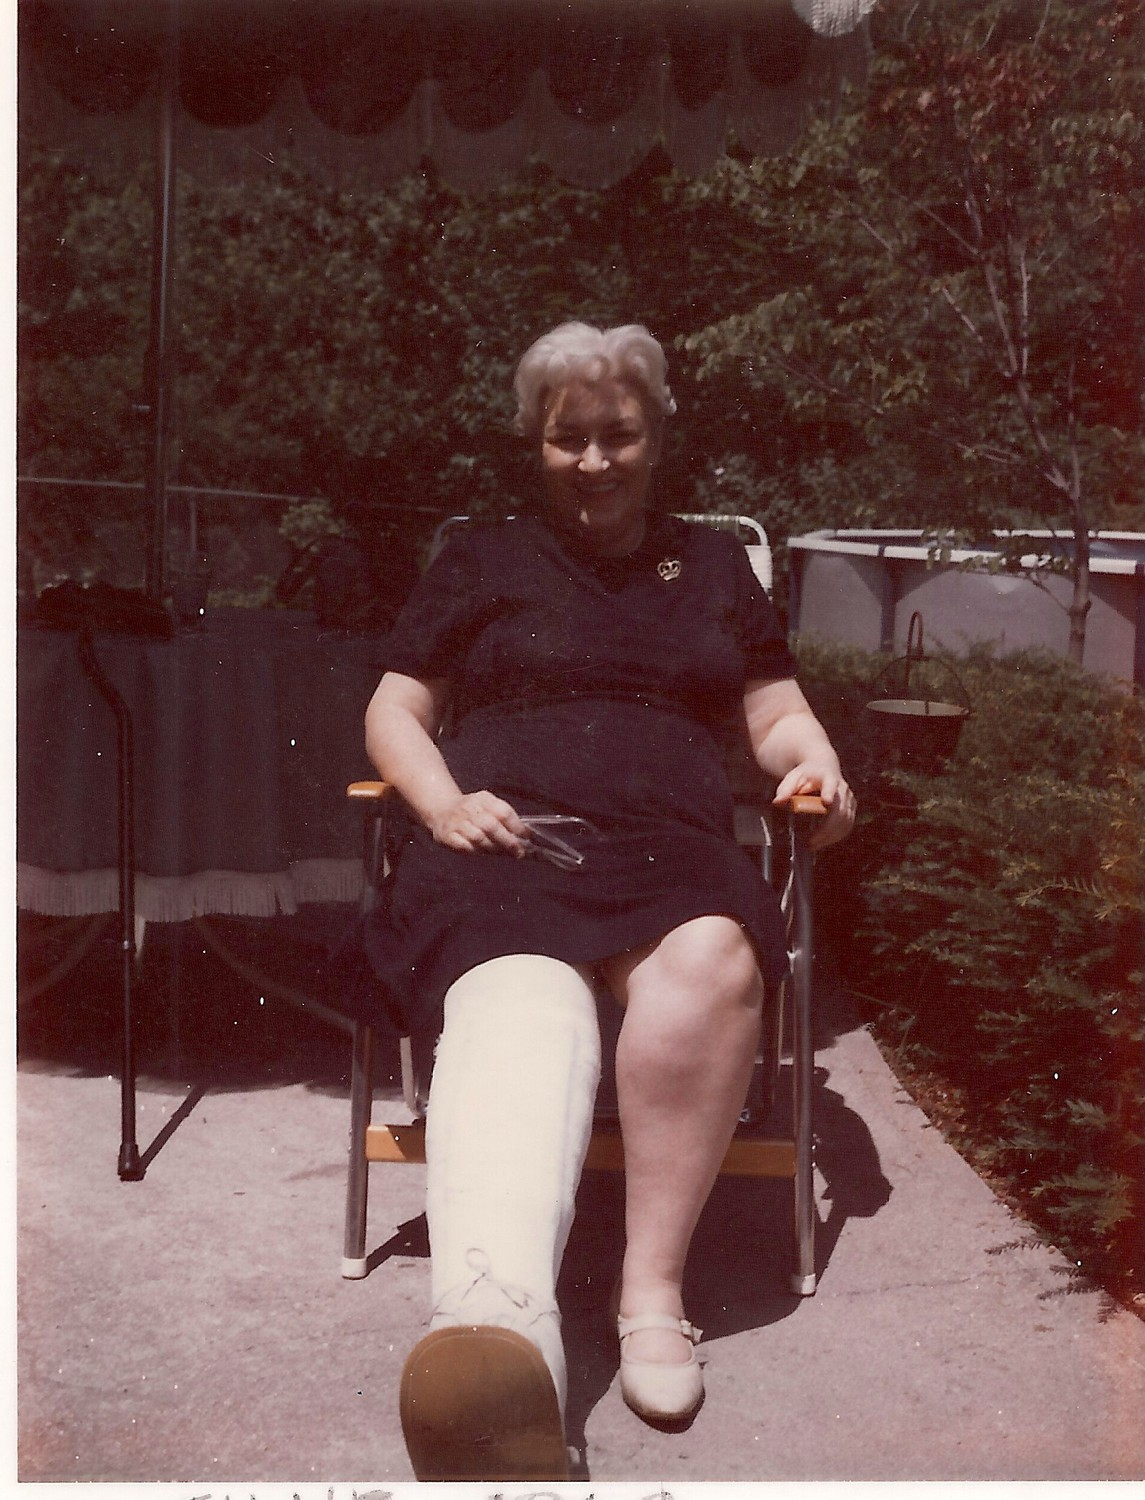 In June 1968, McFadden was in a car accident and shattered her right leg. The following year, she taught in a Bethpage High School classroom that was right next to an elevator.